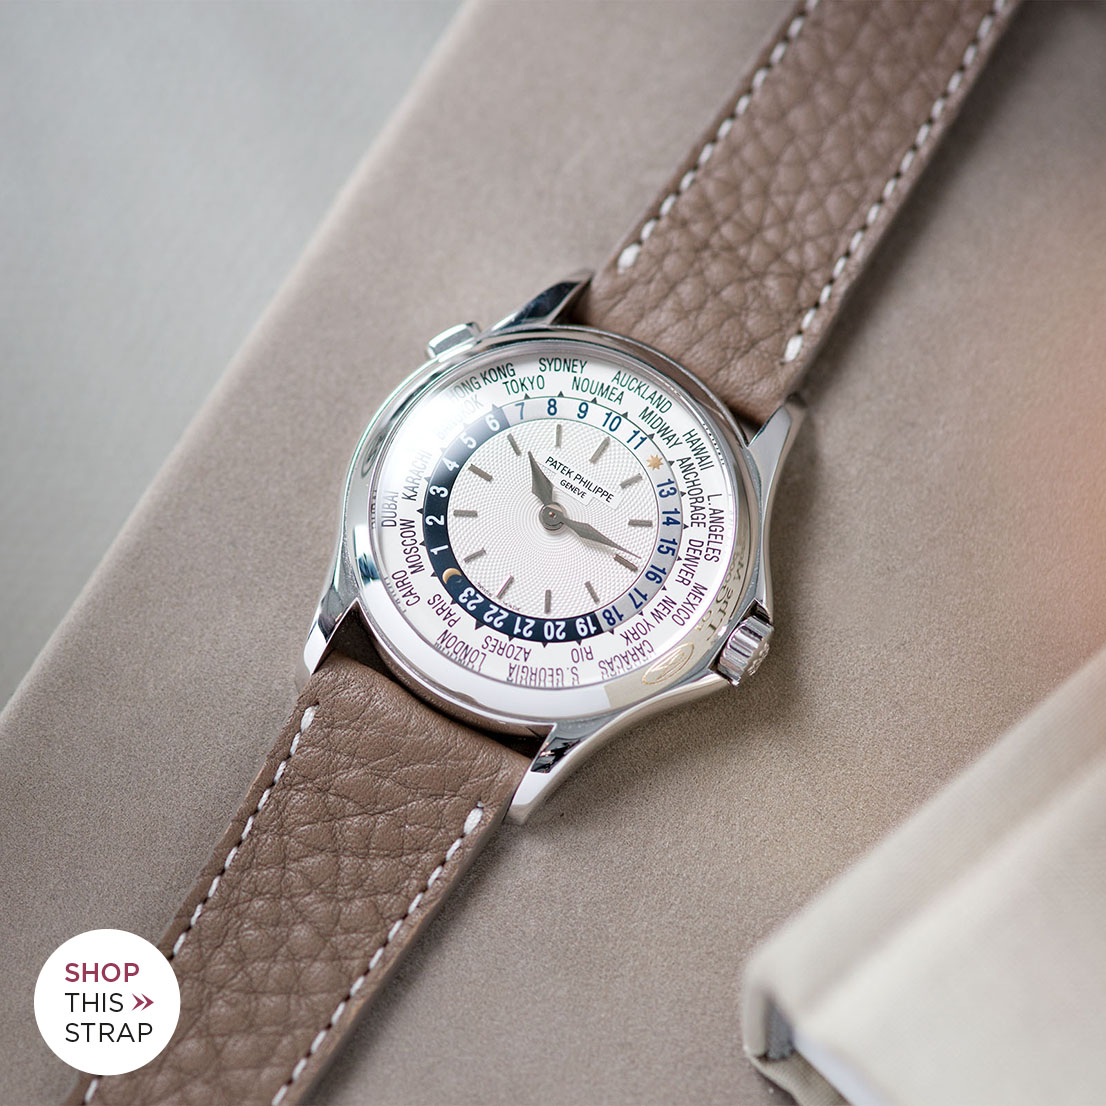 Bulang and Sons Strap Guide Patek Philippe 5110G White Gold World Timer